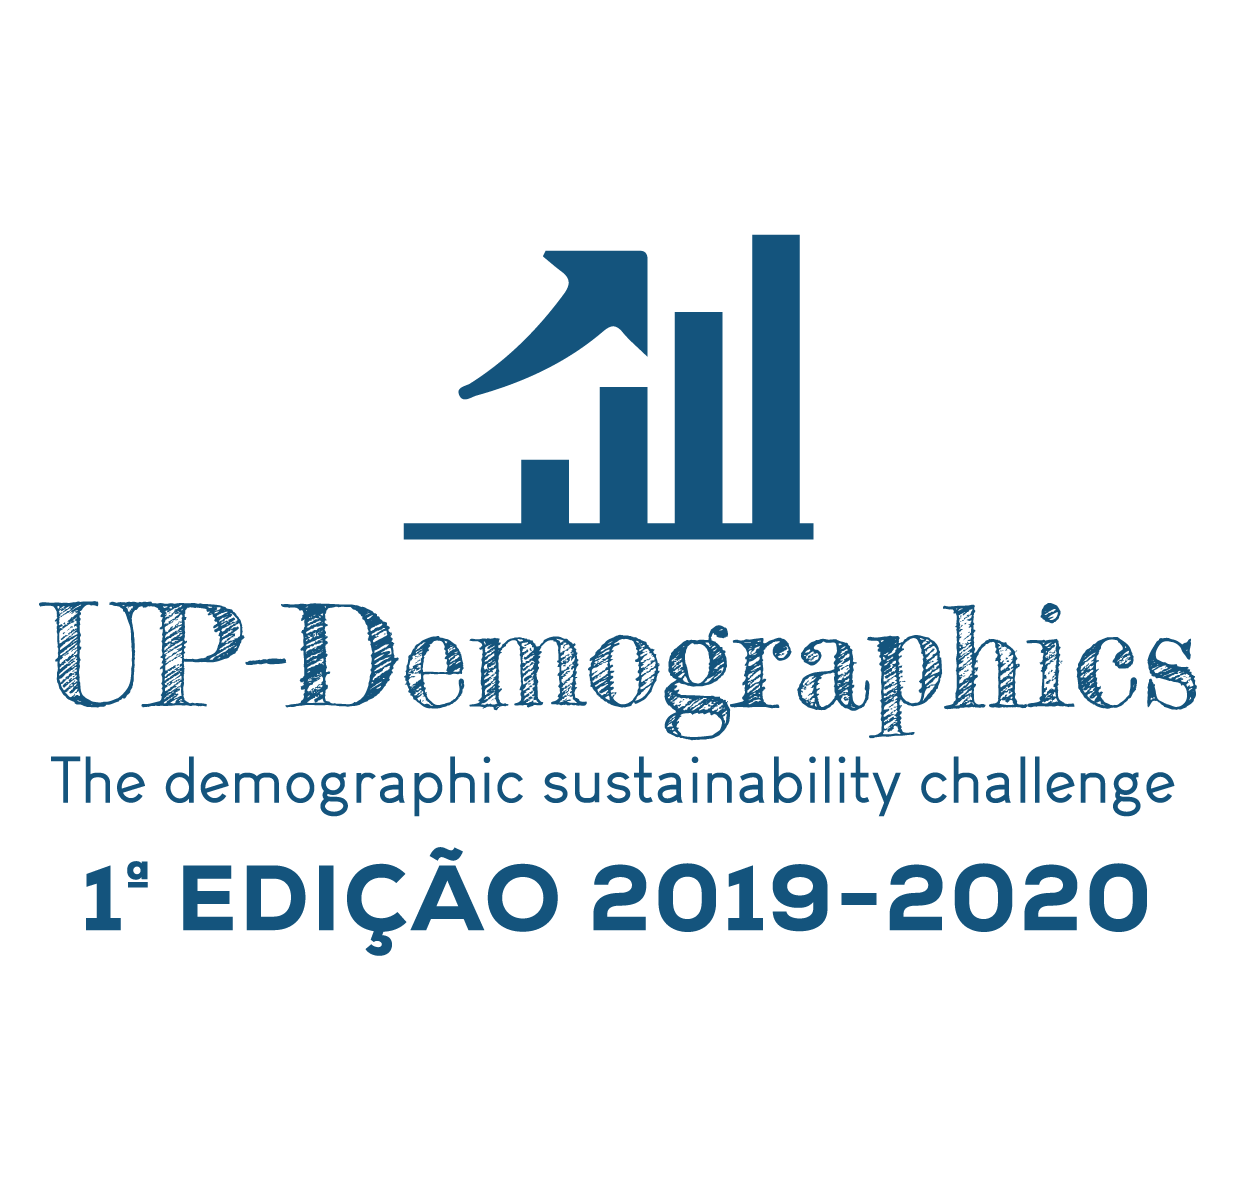 Estão abertas as inscrições para o Up Demographics - The Demographic Sustainability Challenge 2019-2020